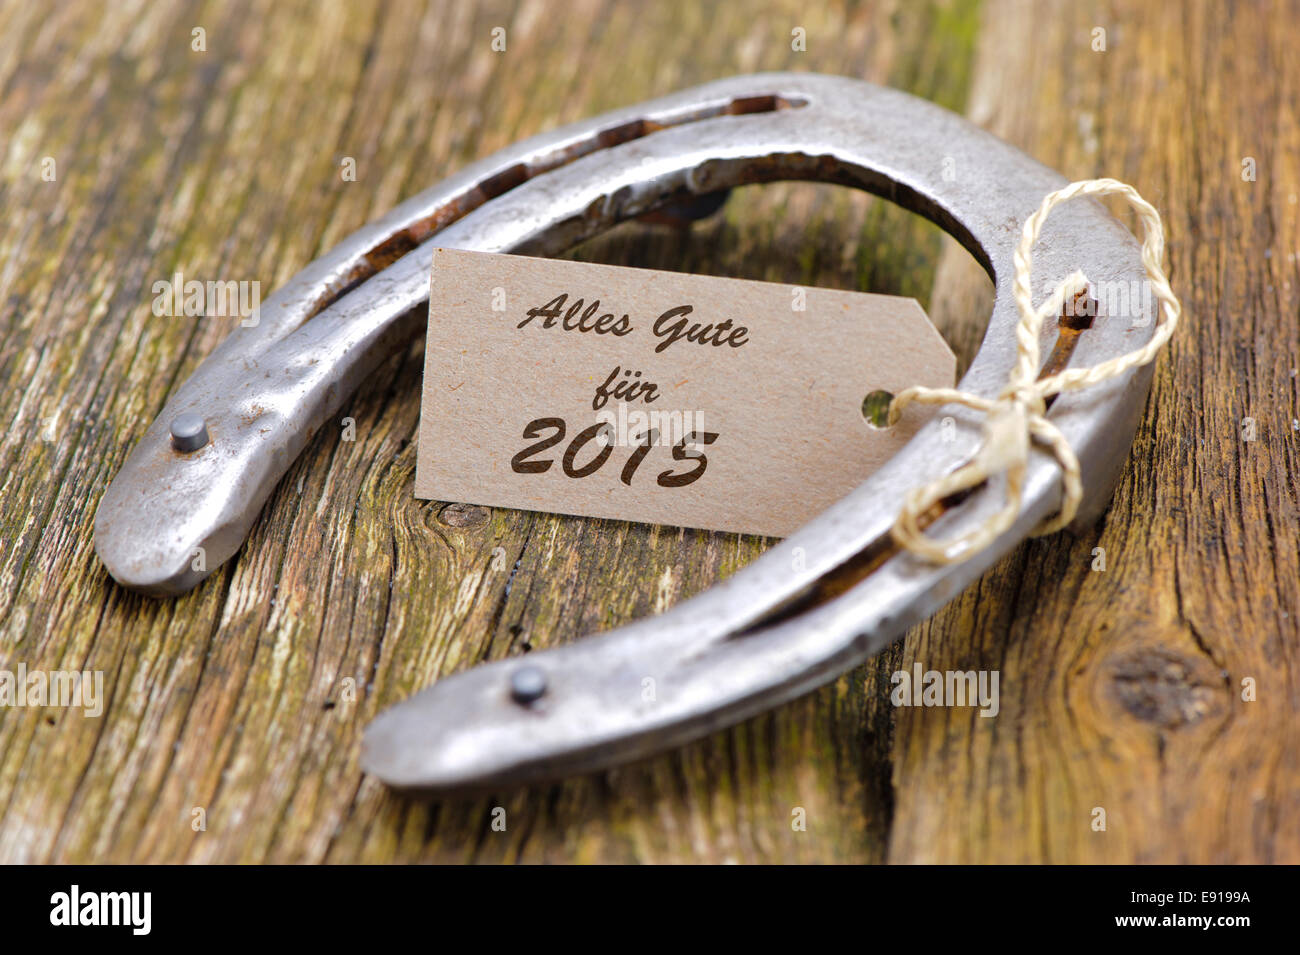 new year 2015 with horseshoe as talisman for good luck Stock Photo